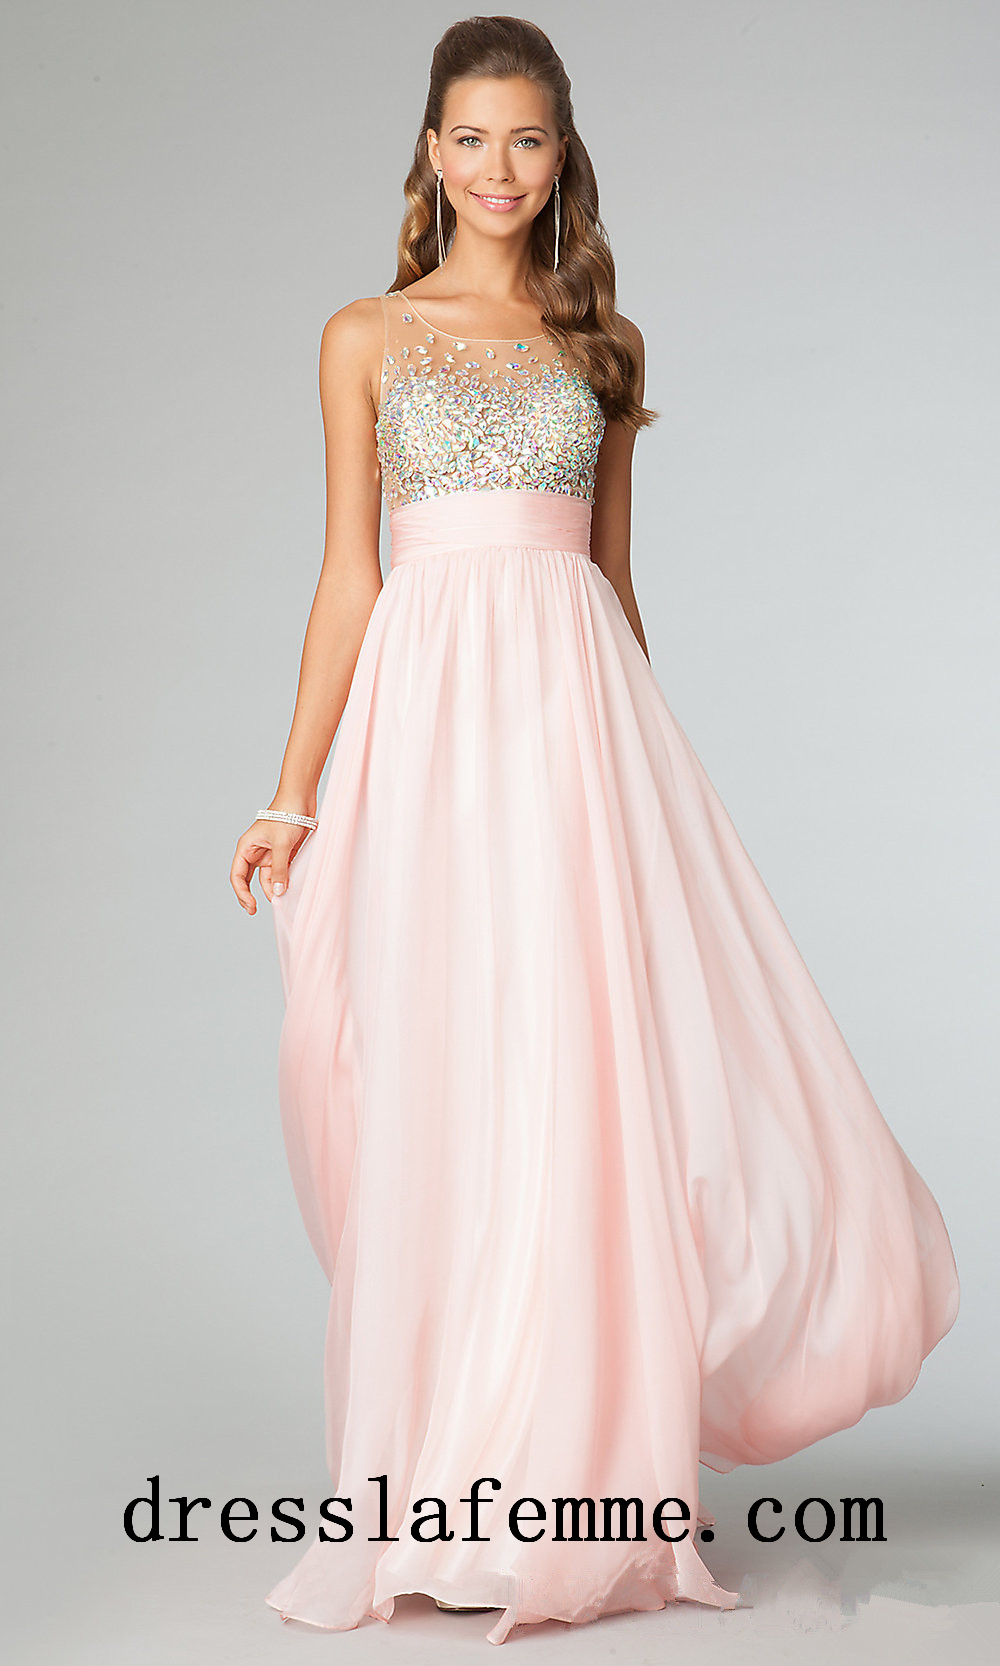 Formal Dresses - Page 509 of 522 - Prom Dress Shops